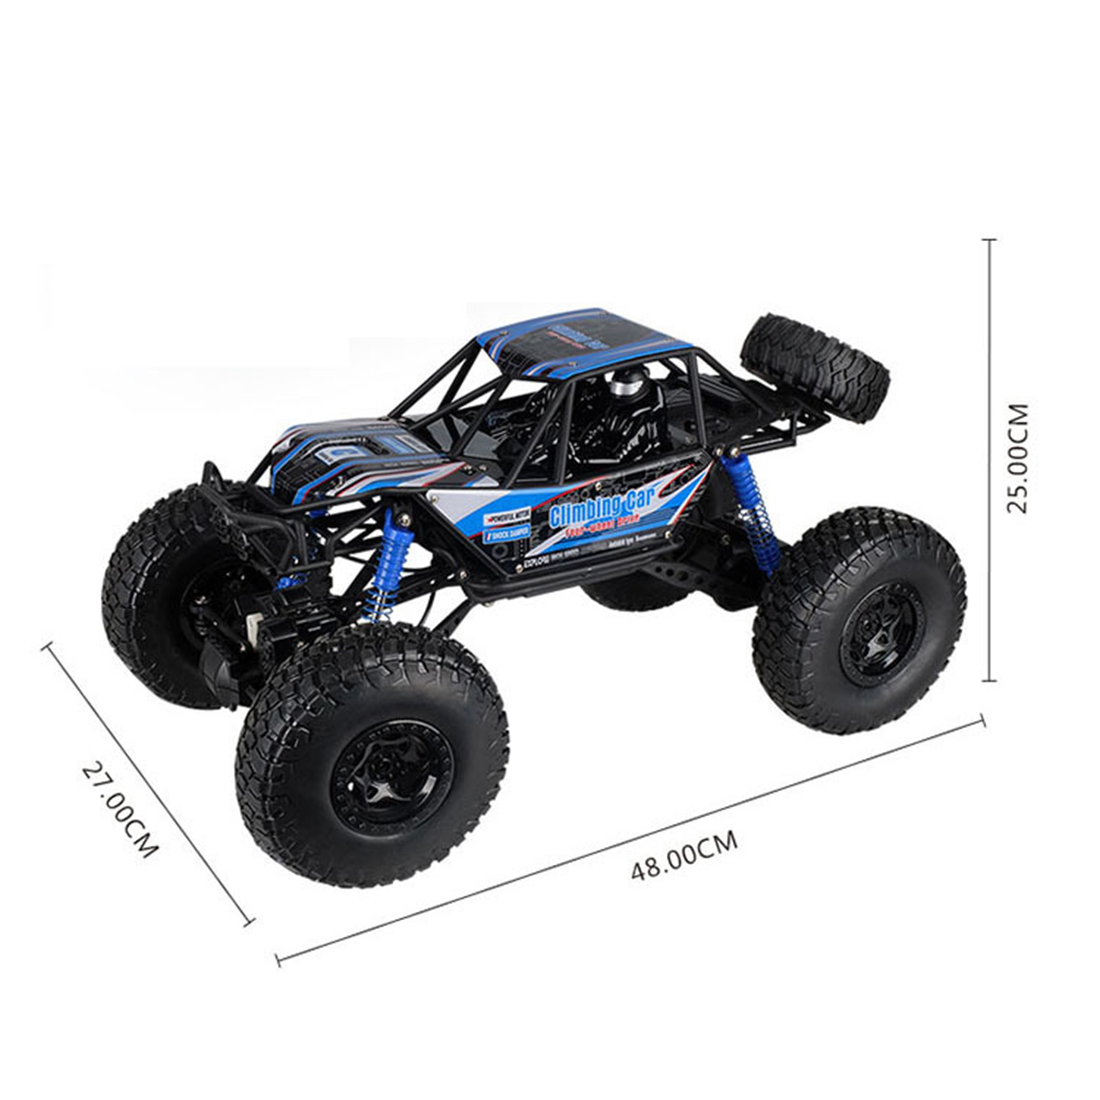 48cm 1:10 4WD 2.4G RC Monster Truck High Speed Racing Car Off Road Vehicle For Child School Play Education Birthday Gift Blue - 2